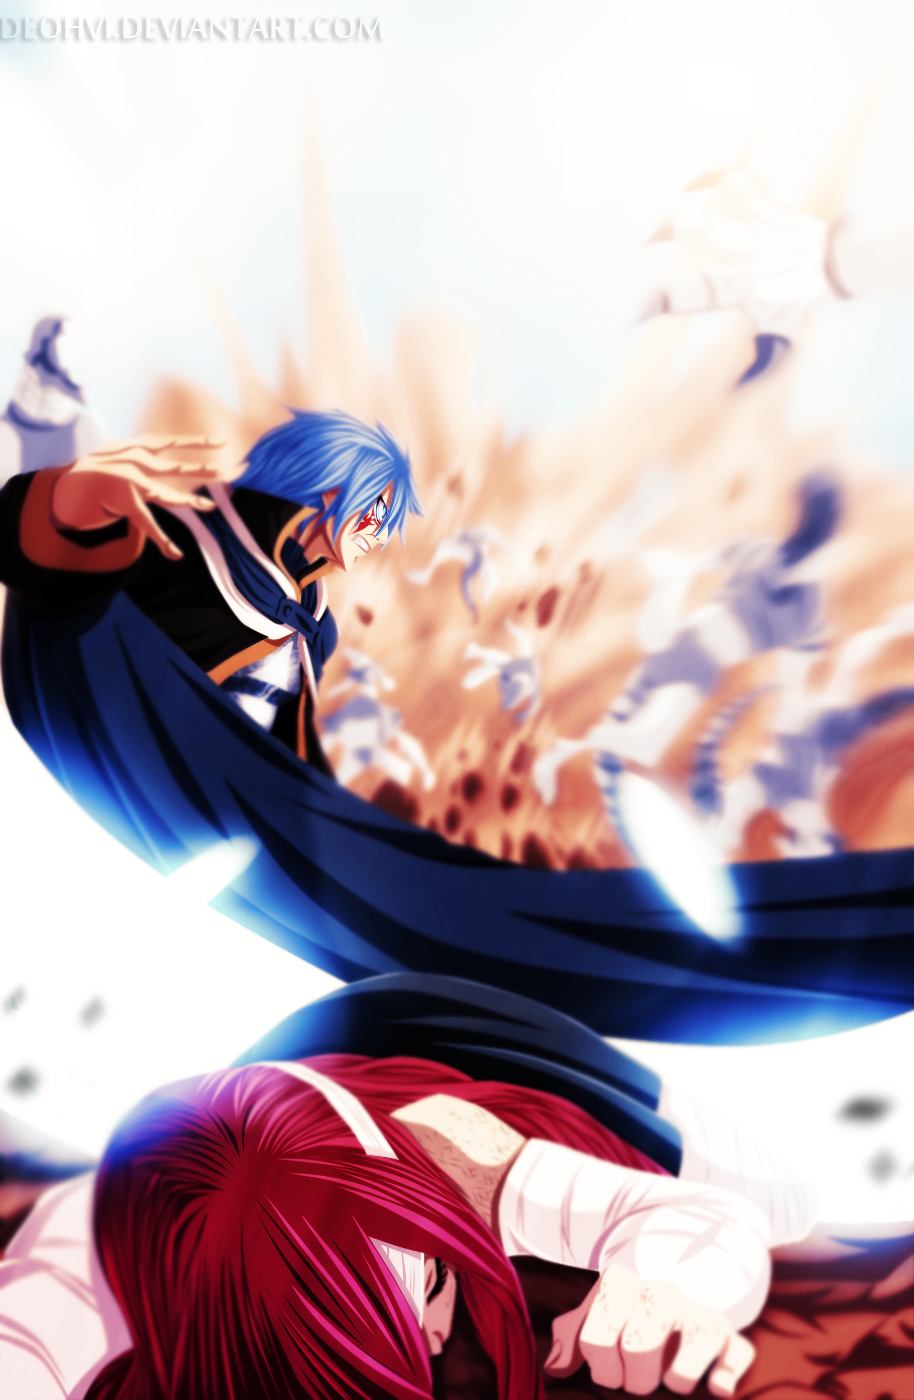 Image jellal saves erza fairy tail wiki - Image fairy tail erza ...